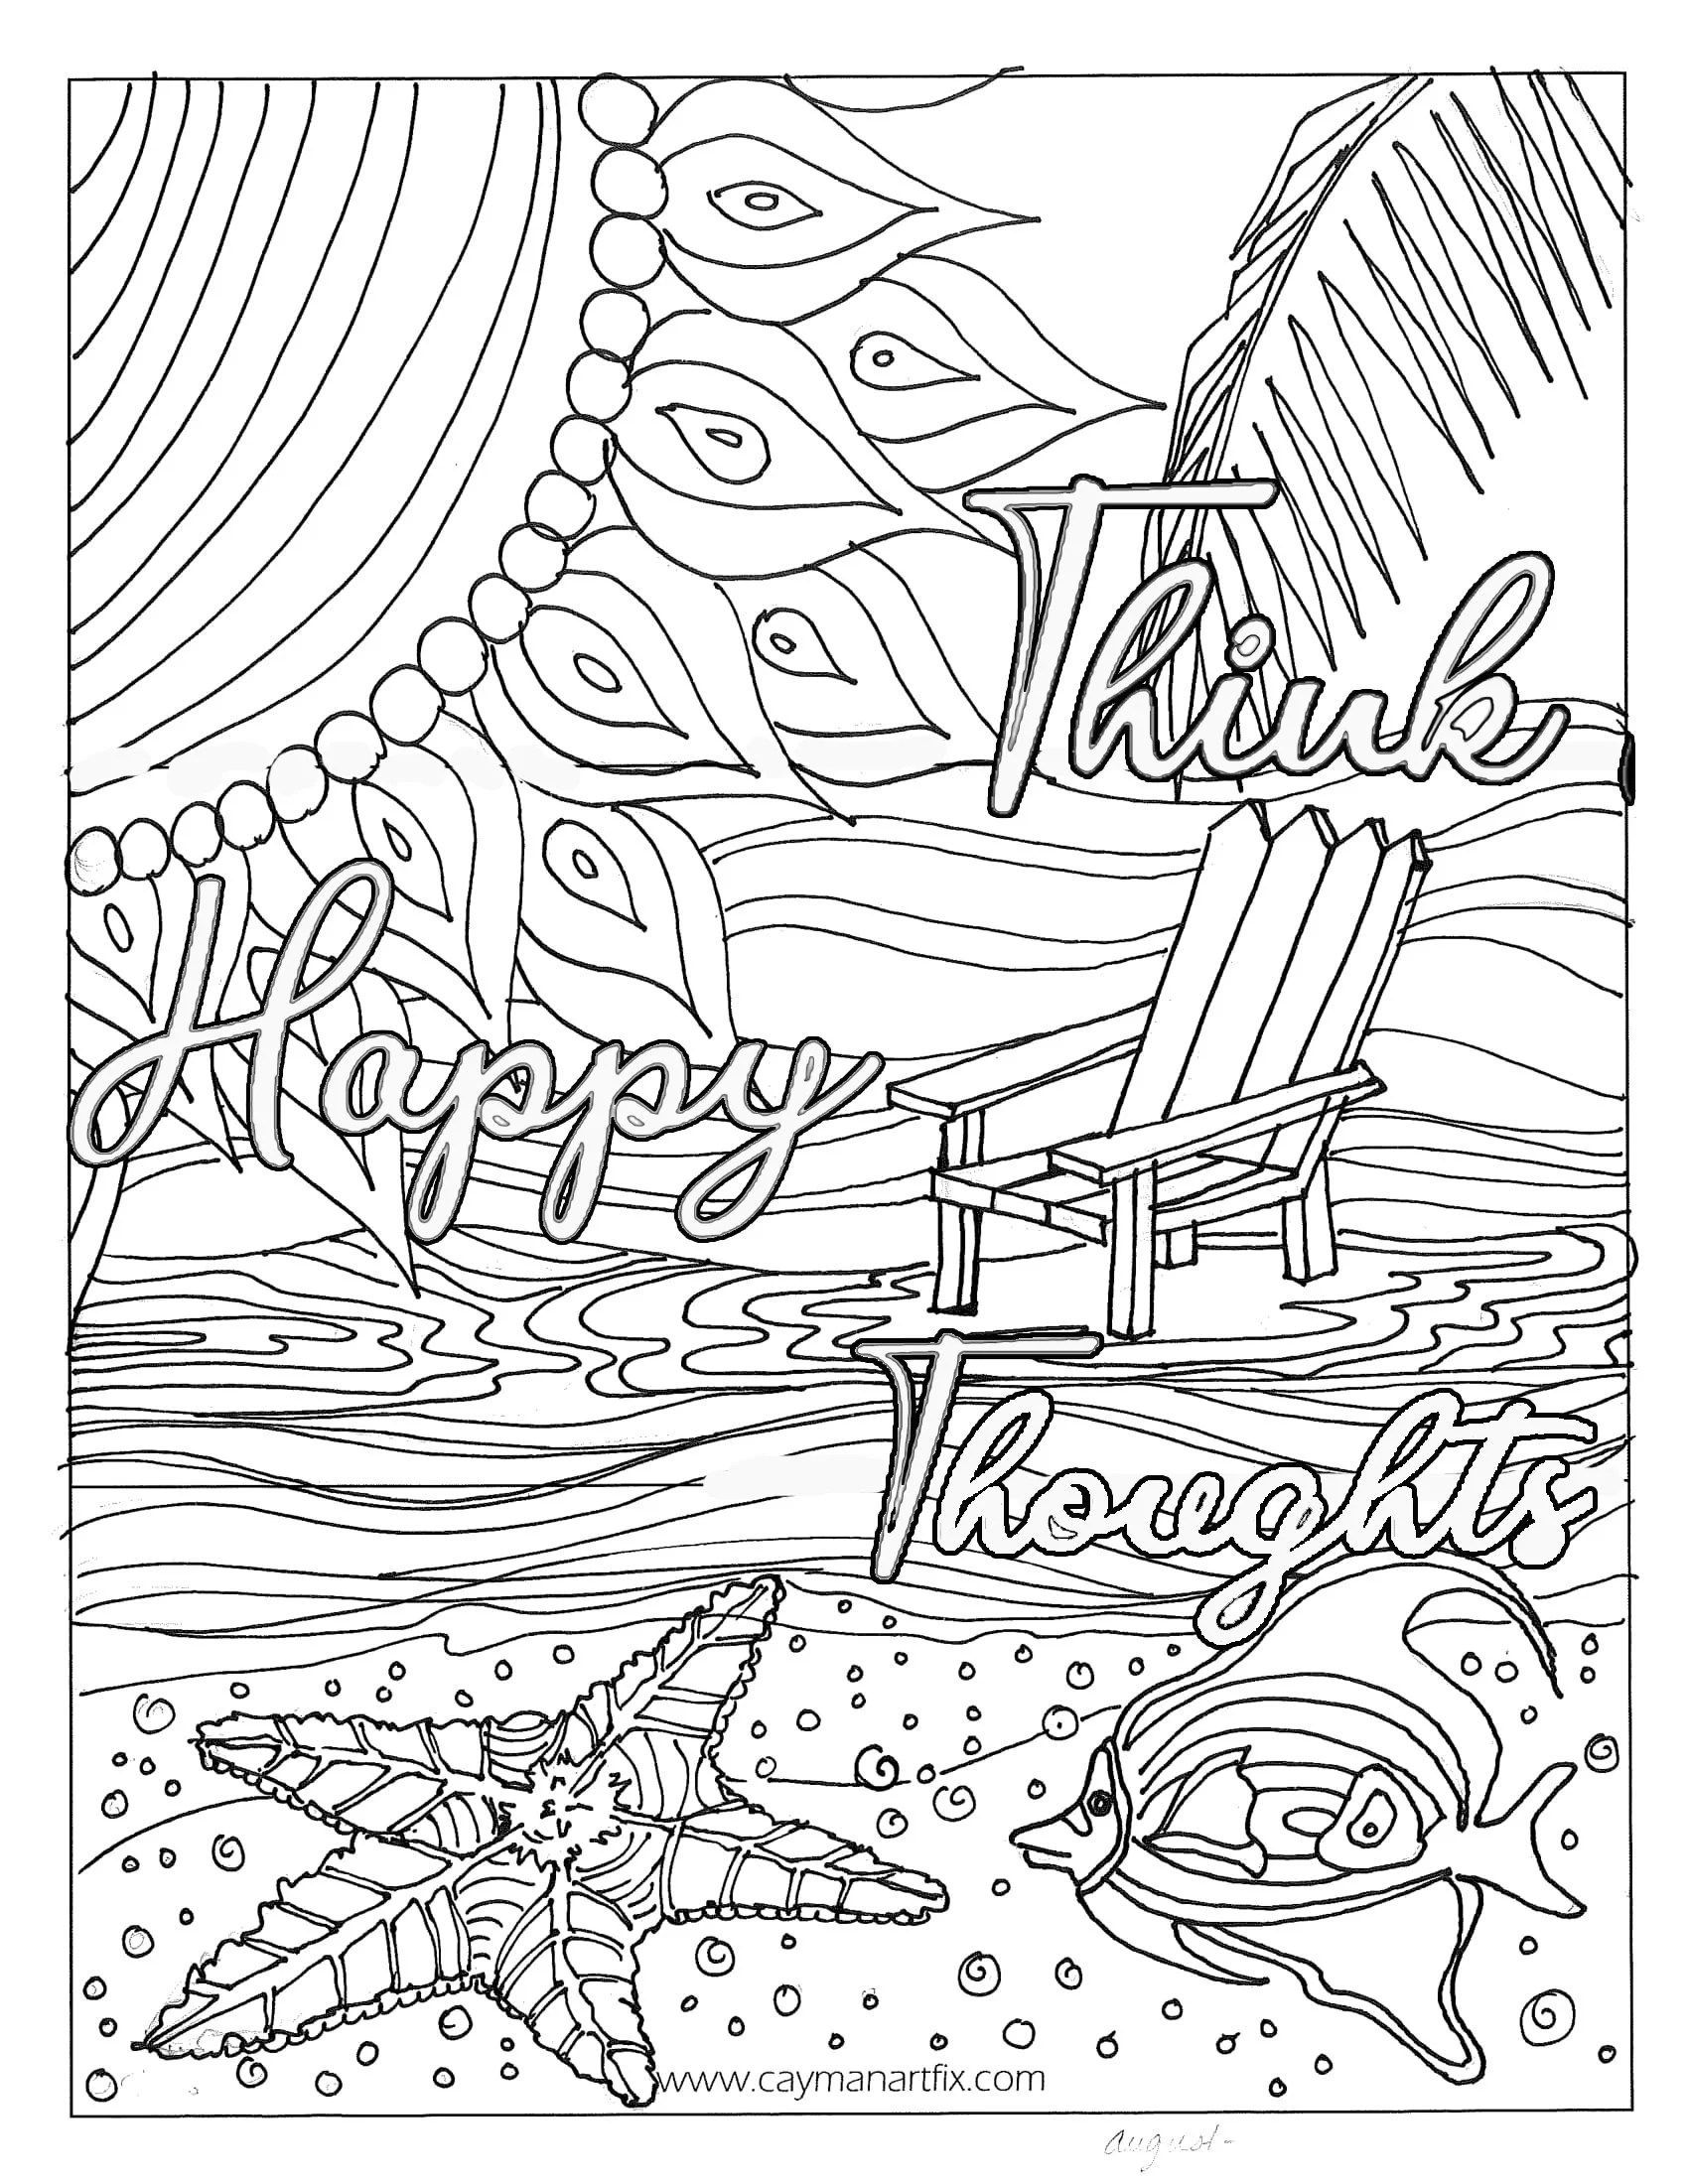 Think Happy Thoughts Quote Coloring Page Motivational